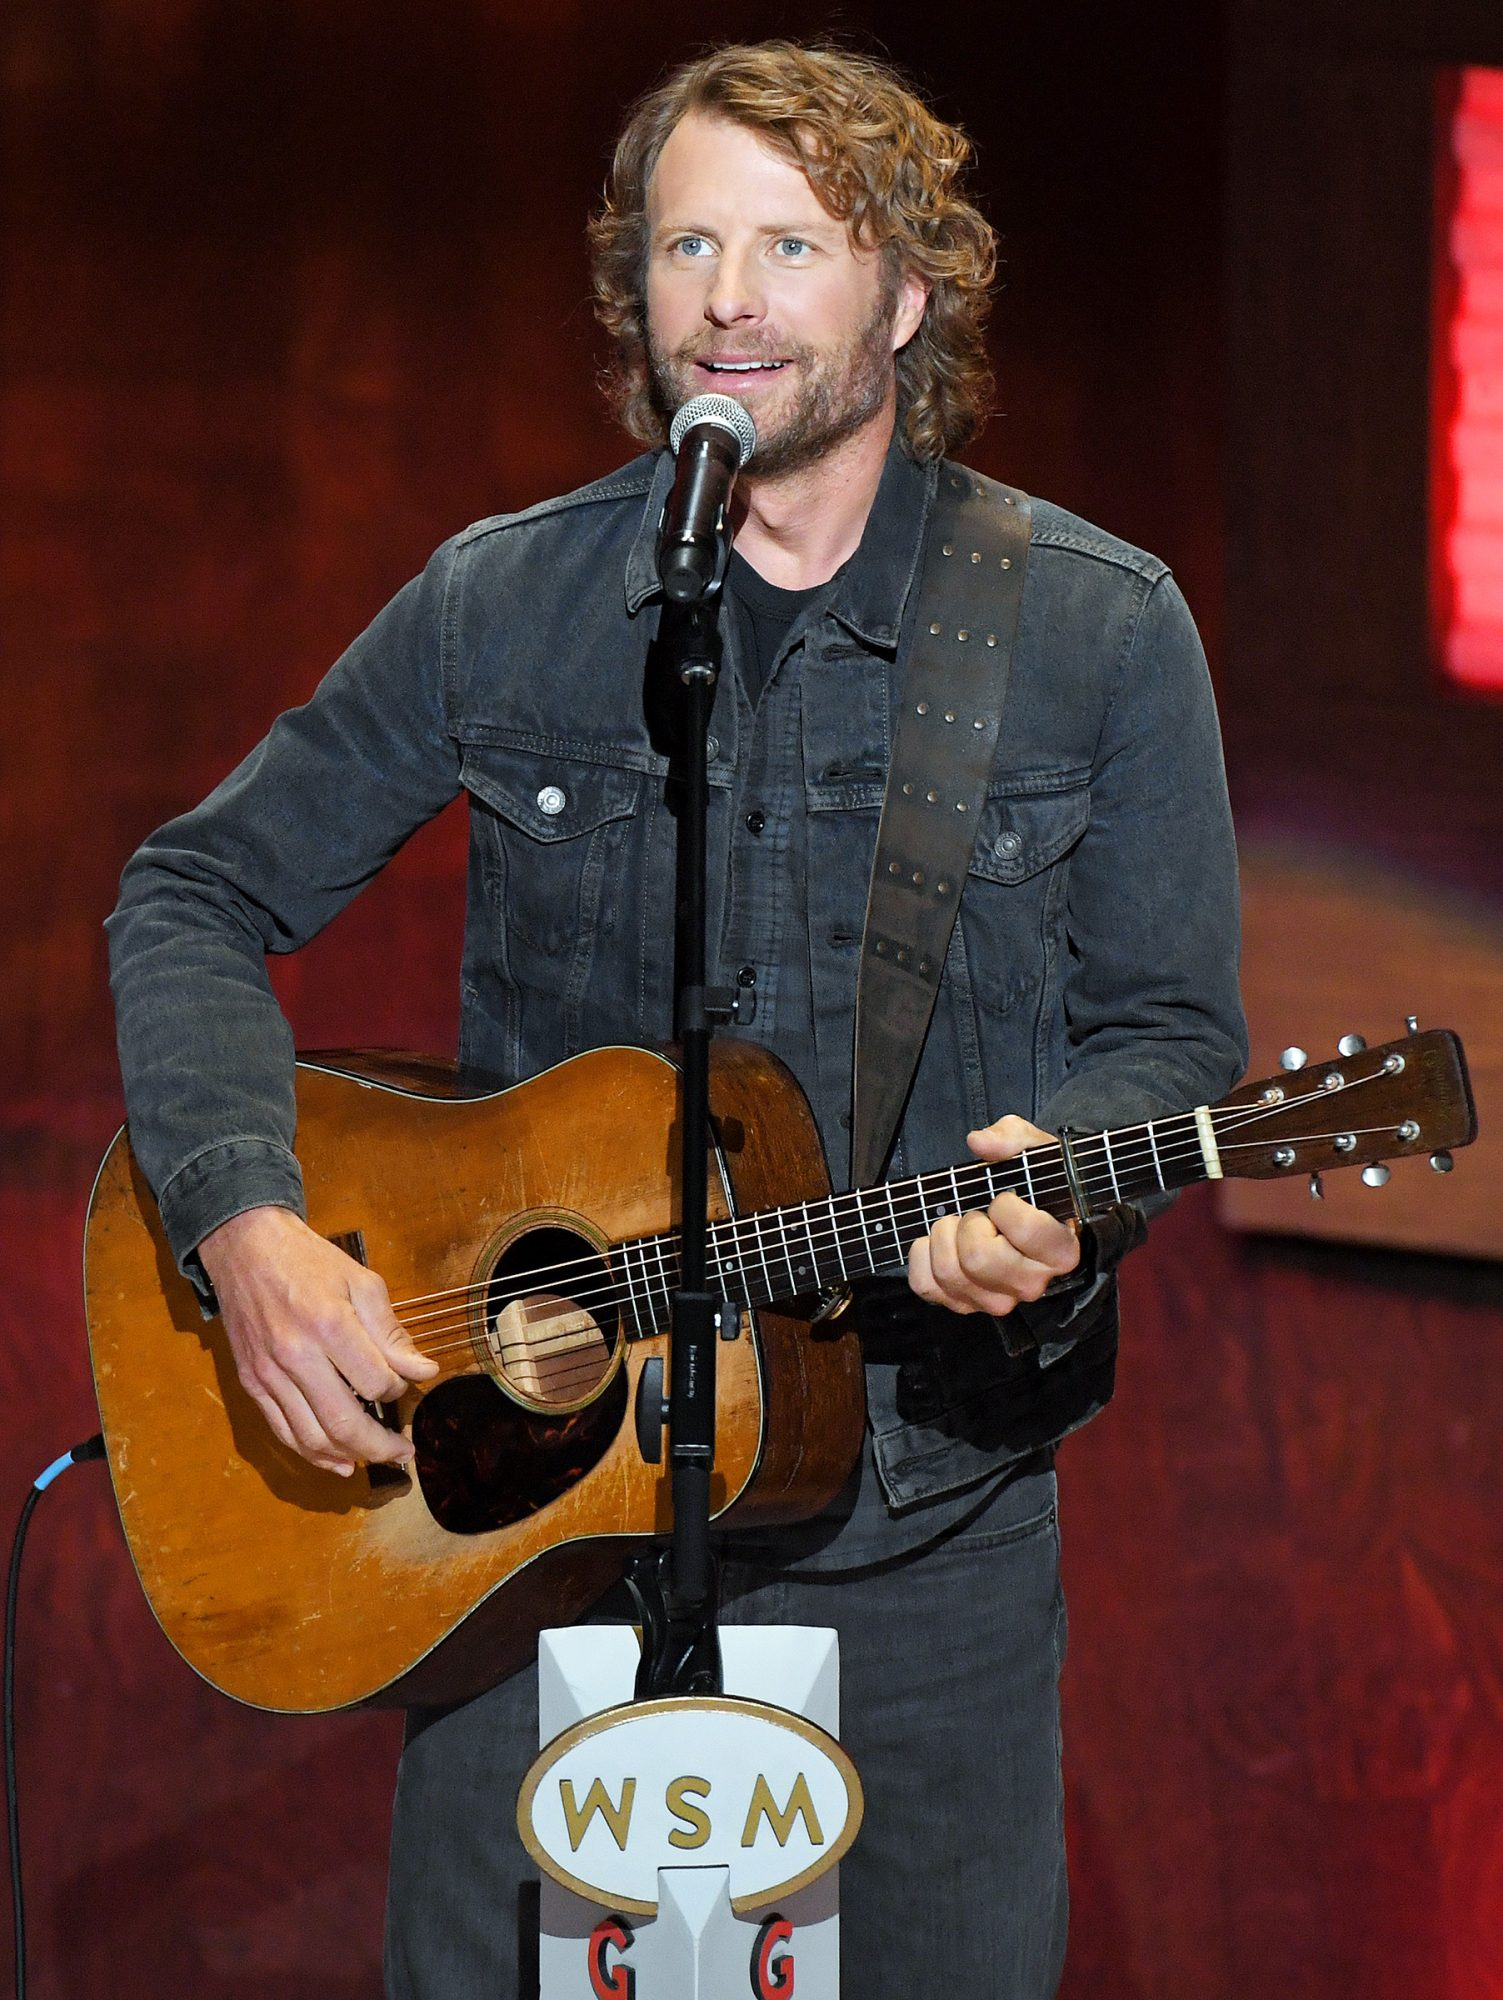 Dierks Bentley performs during the 95th anniversary celebration kick off at The Grand Ole Opry on October 03, 2020 in Nashville, Tennessee